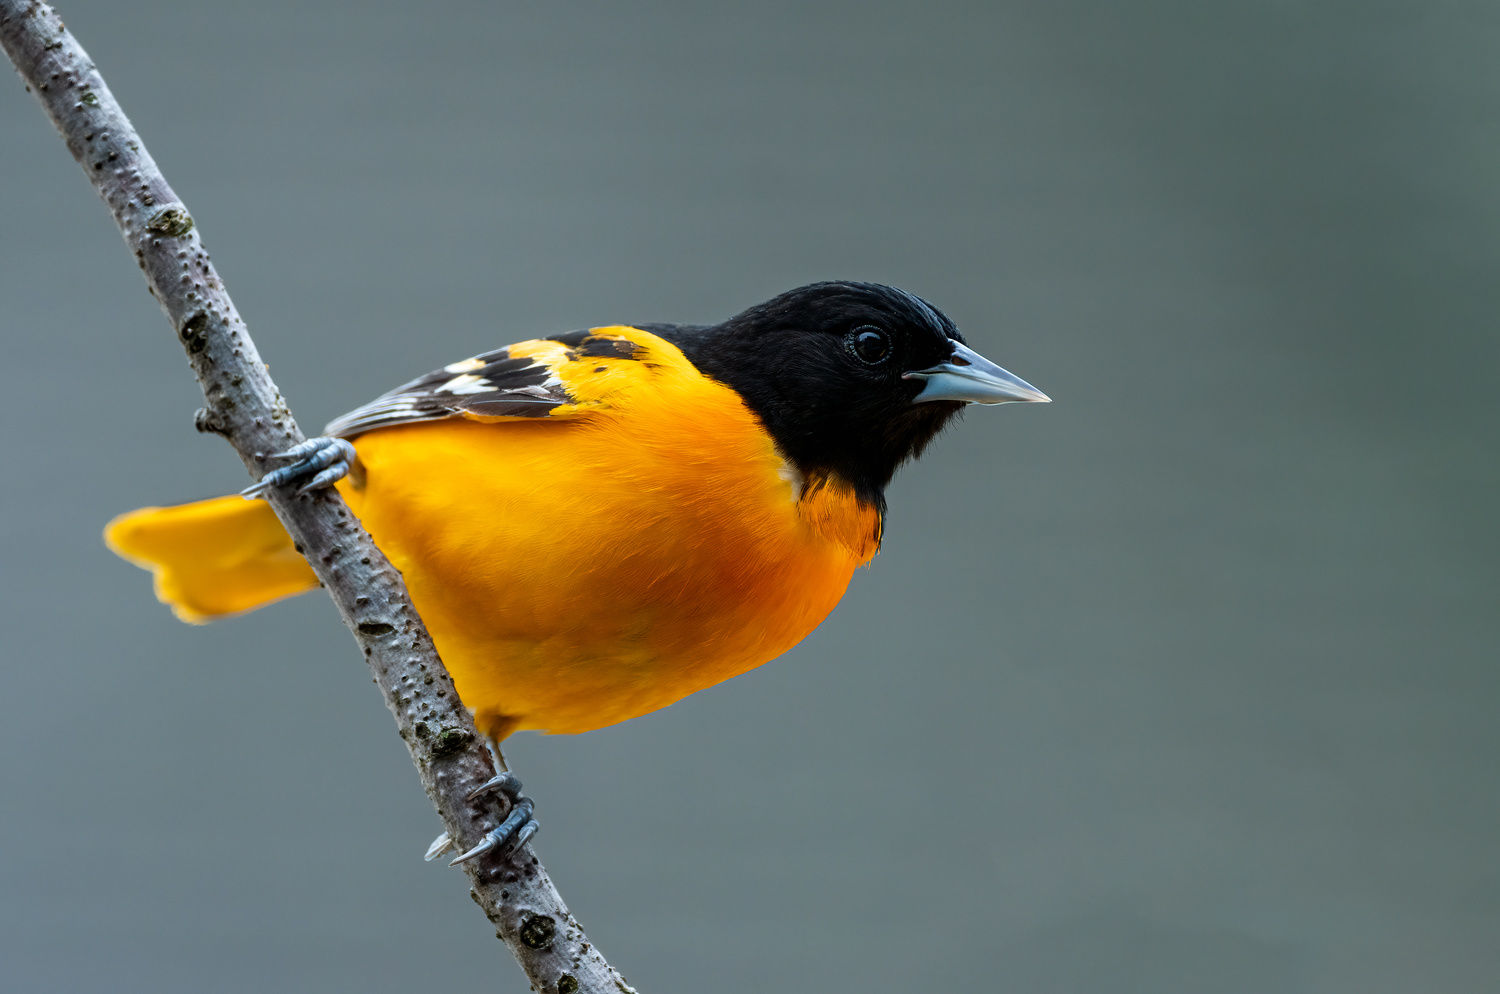 Male Baltimore Oriole by Skyler Ewing